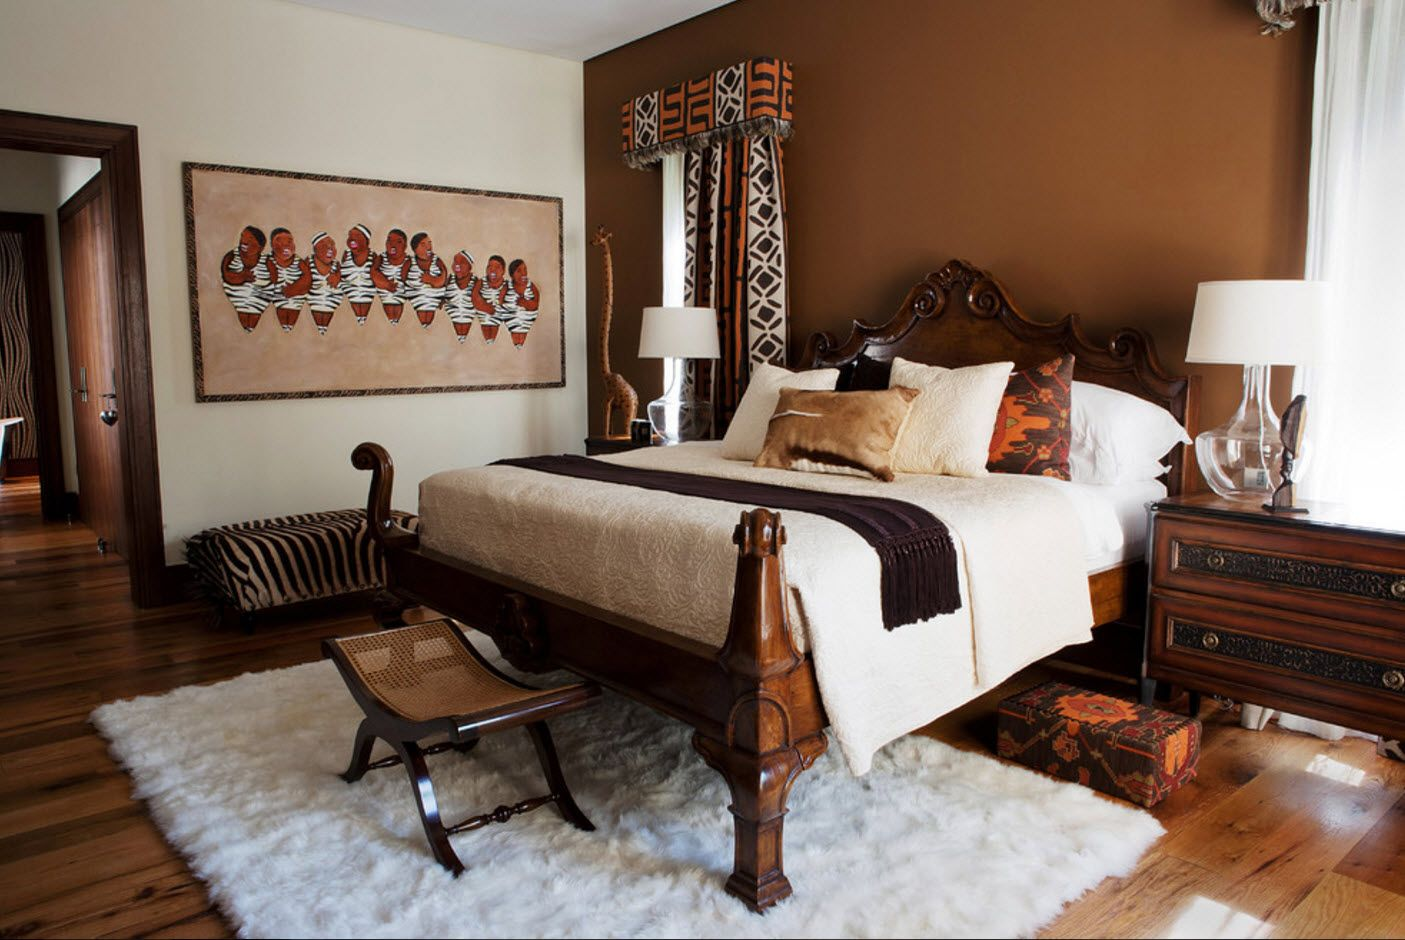 Bedroom Drapes 2017. Design, Forms, Real Examples with Photos. Royal African style with folding small ebony ottoman